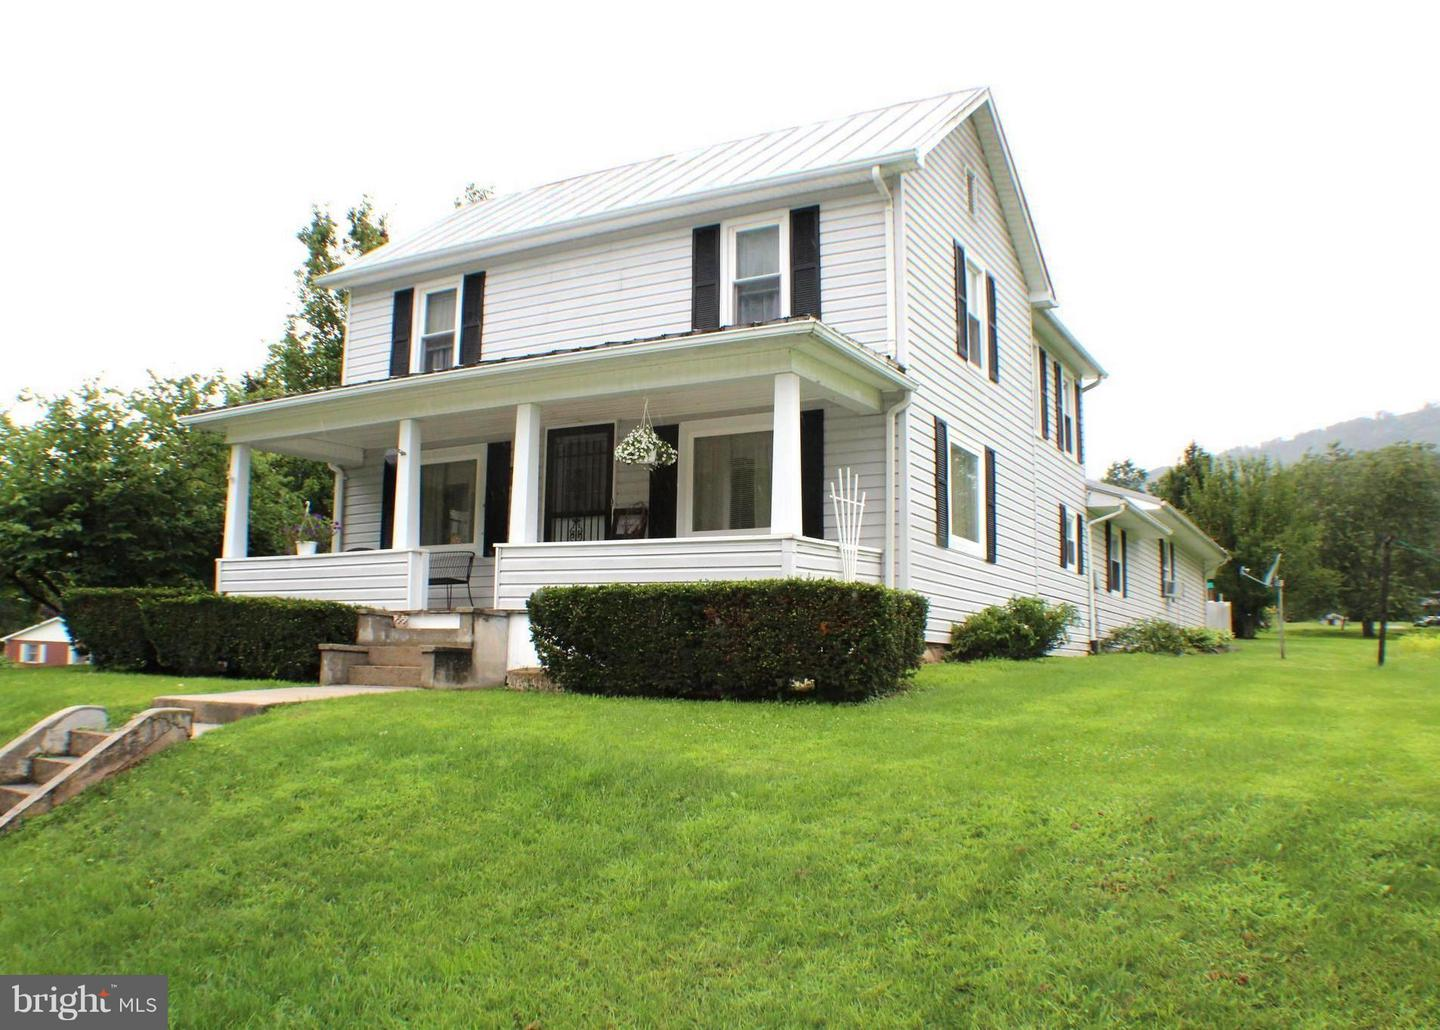 Single Family for Sale at 22 Circleville Rd Circleville, West Virginia 26804 United States